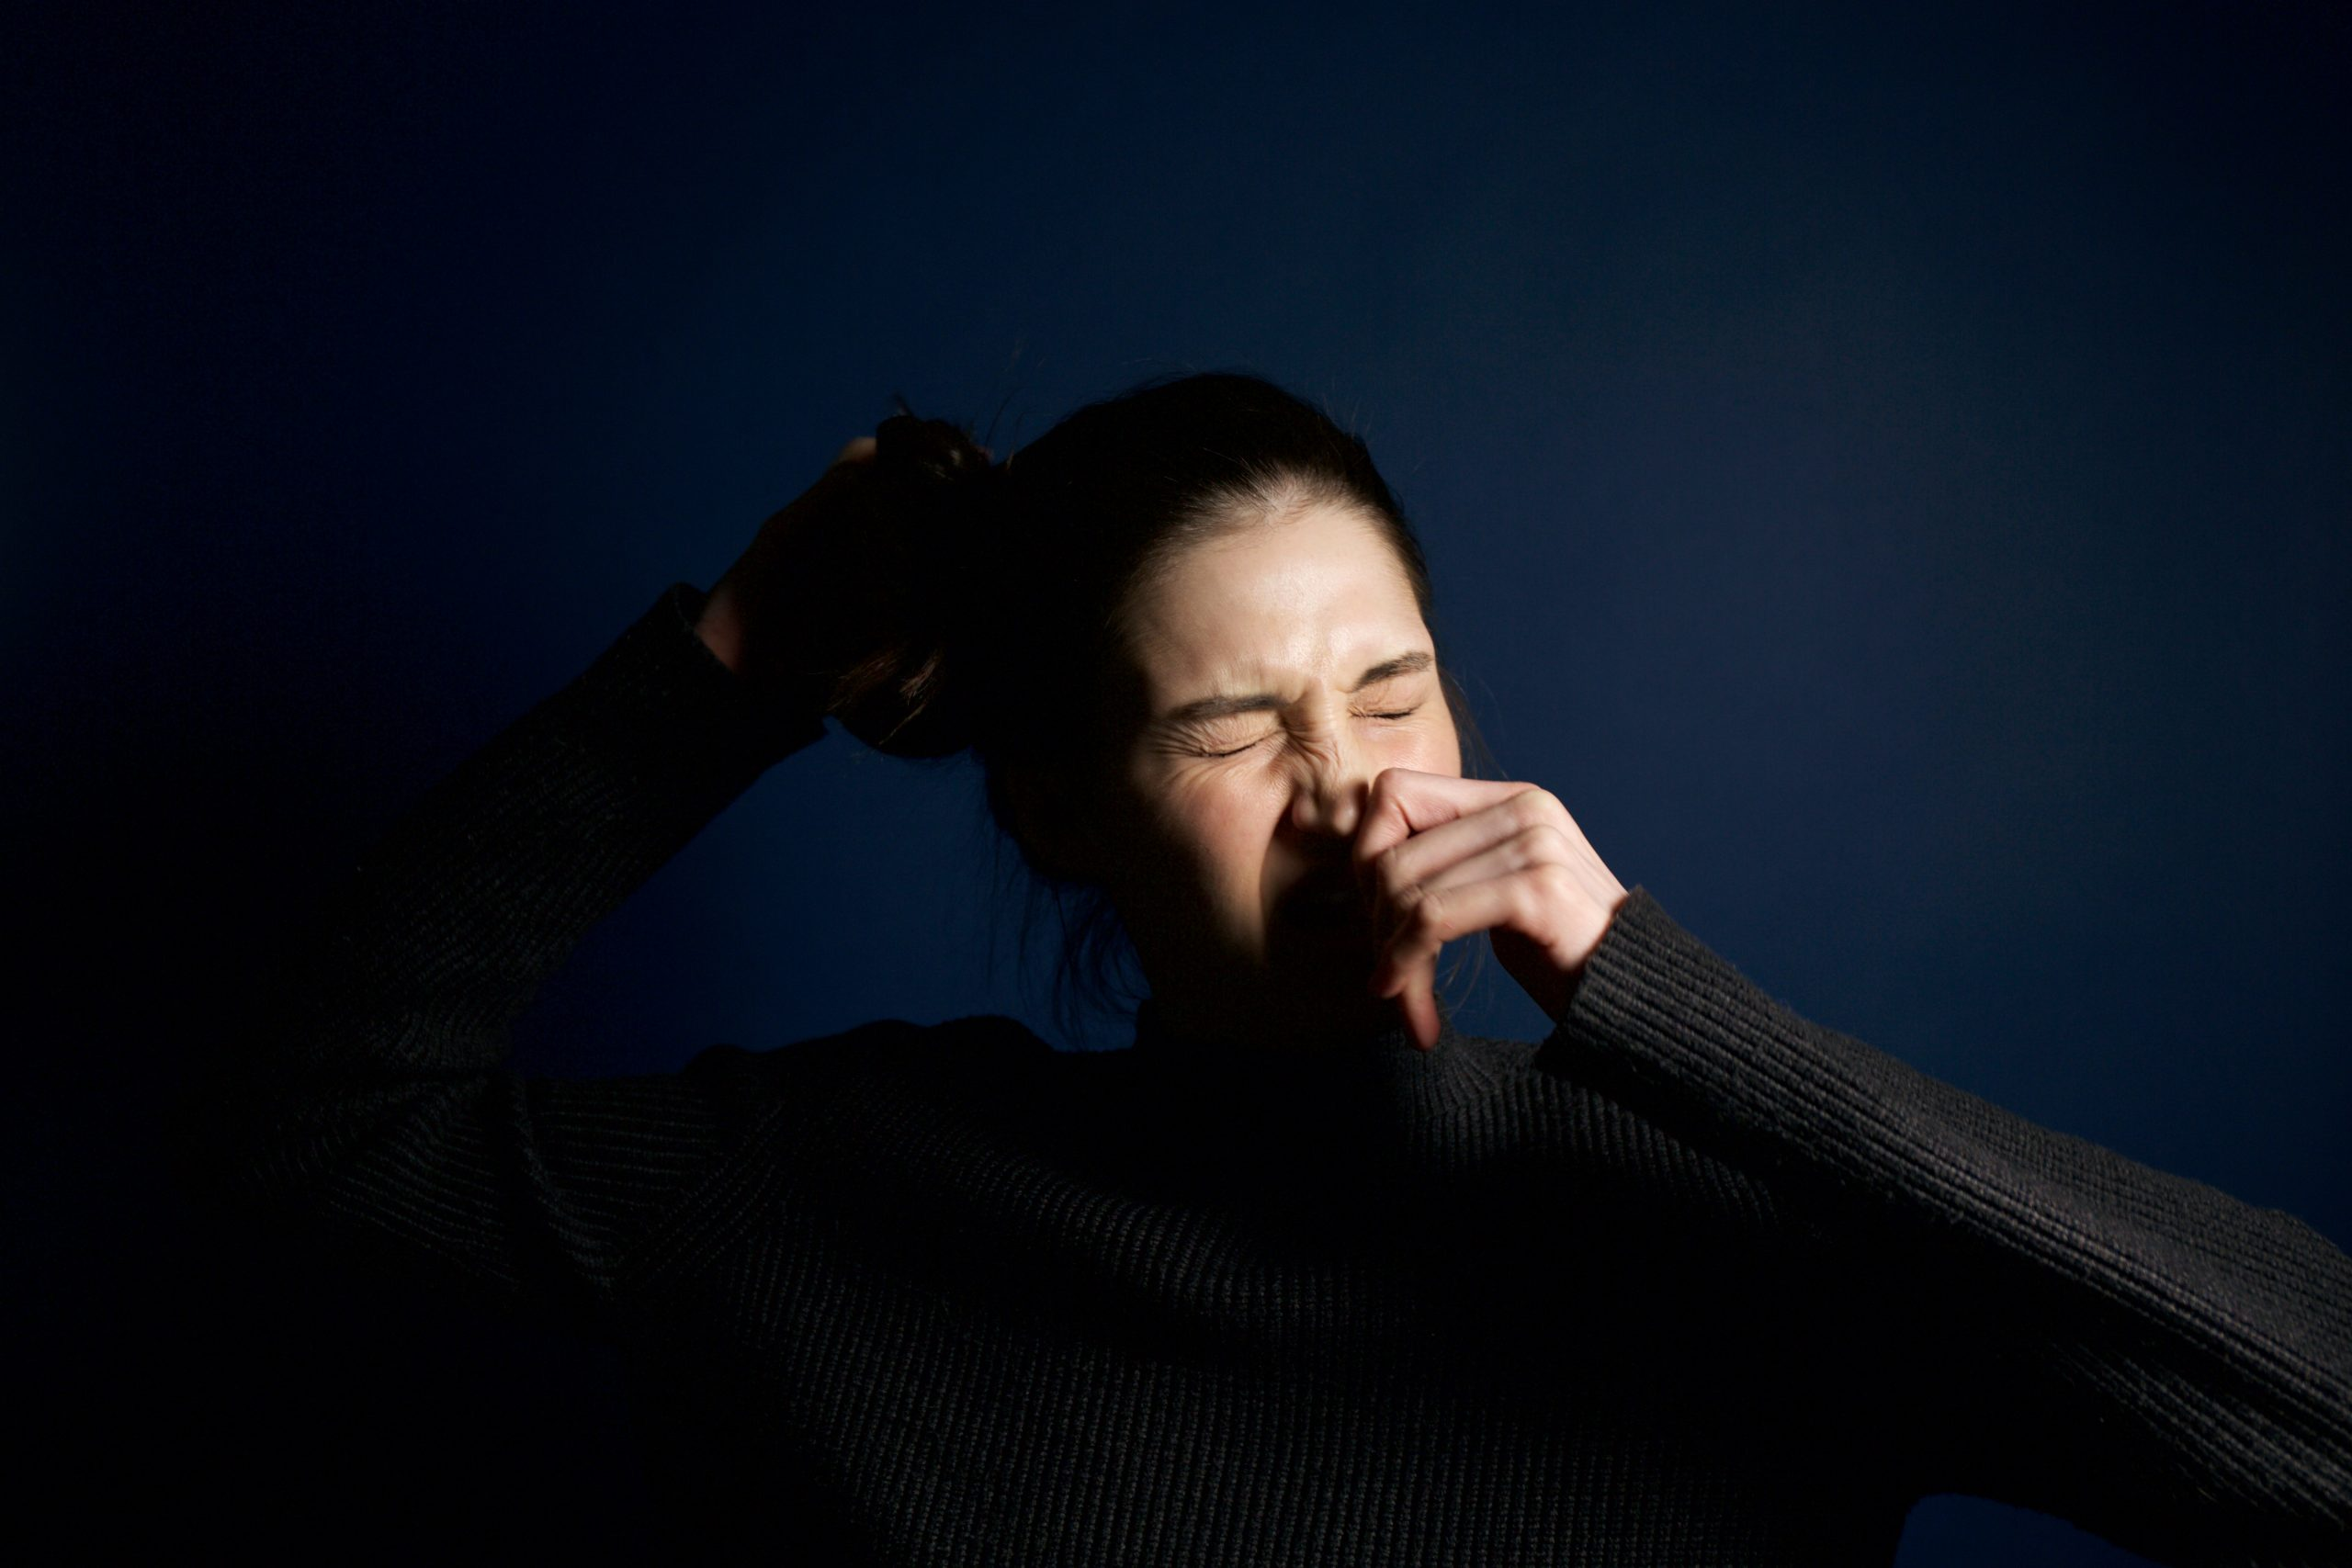 Woman sneezing; allergies, a cold, or the flu.